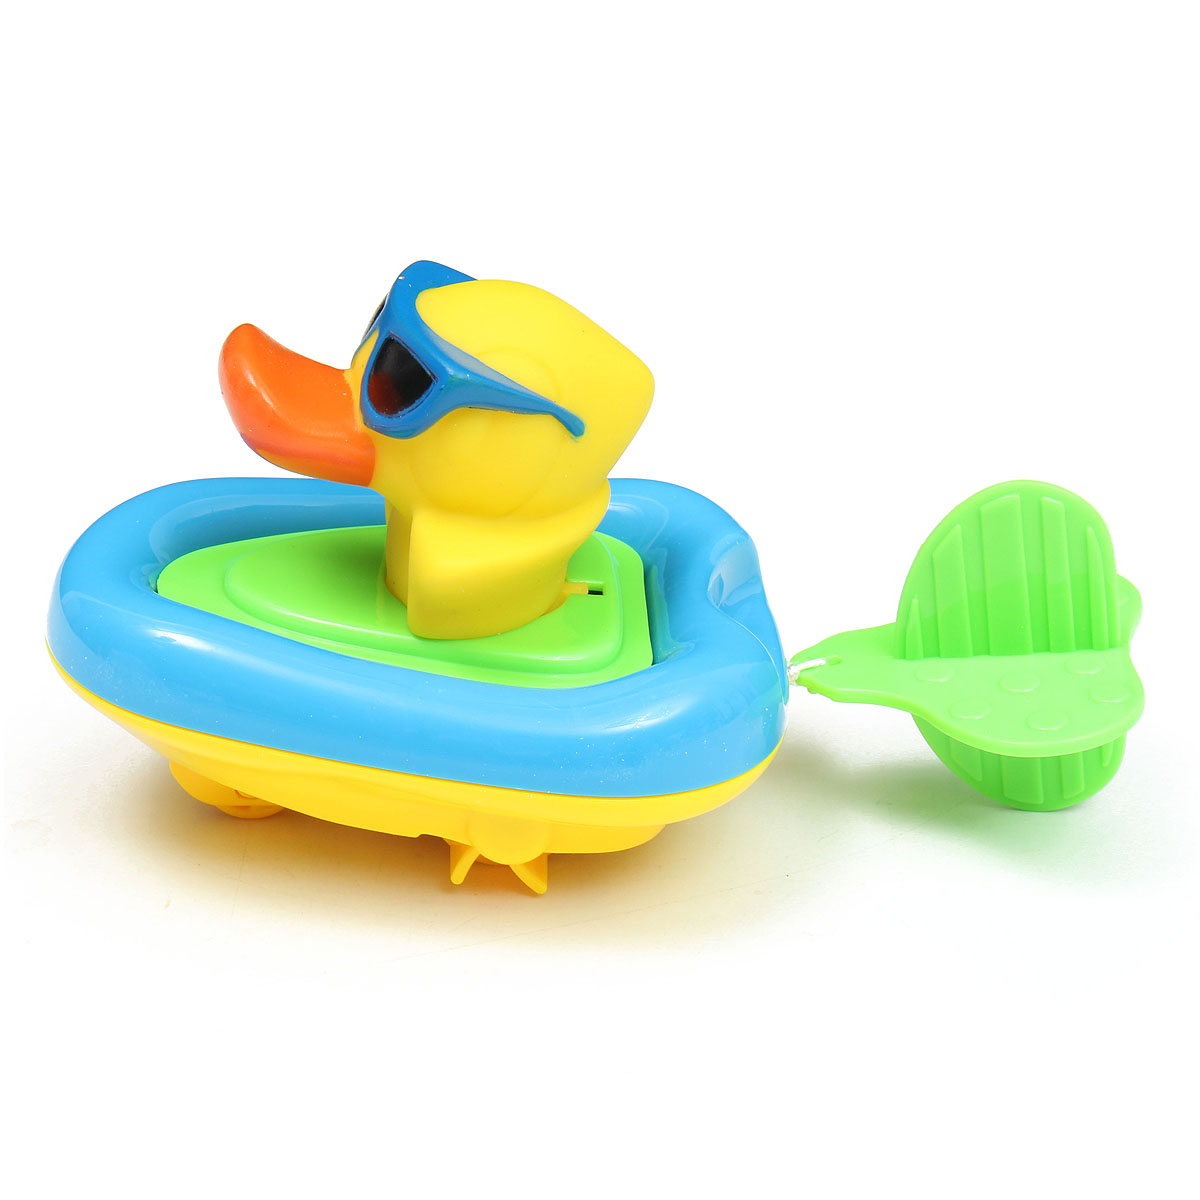 Outstanding Boat Toys For Kids Ornament - Bathroom and Shower Ideas ...